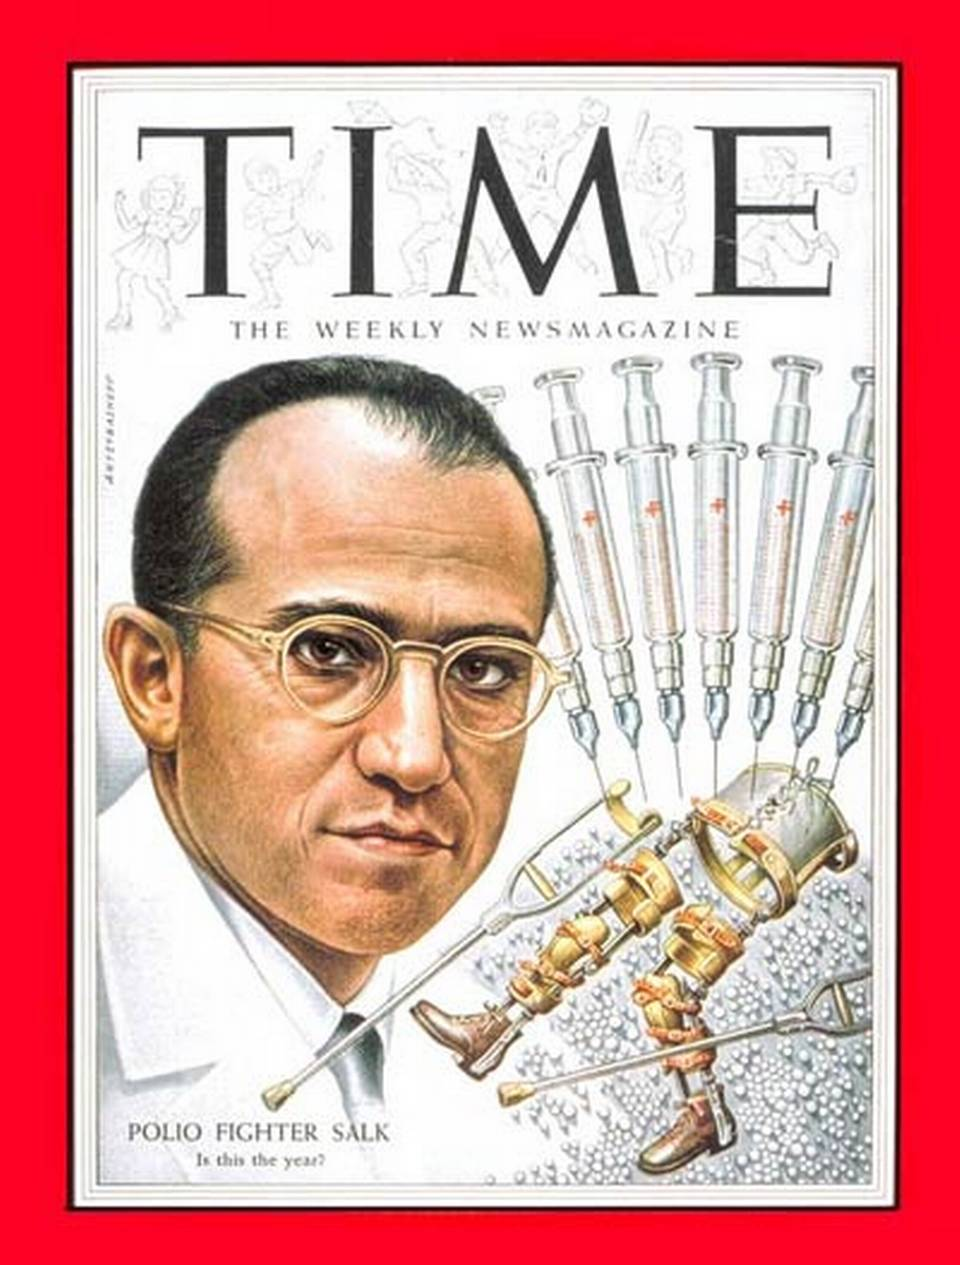 Jonas Salk, on the cover of Time magazine in 1954.}